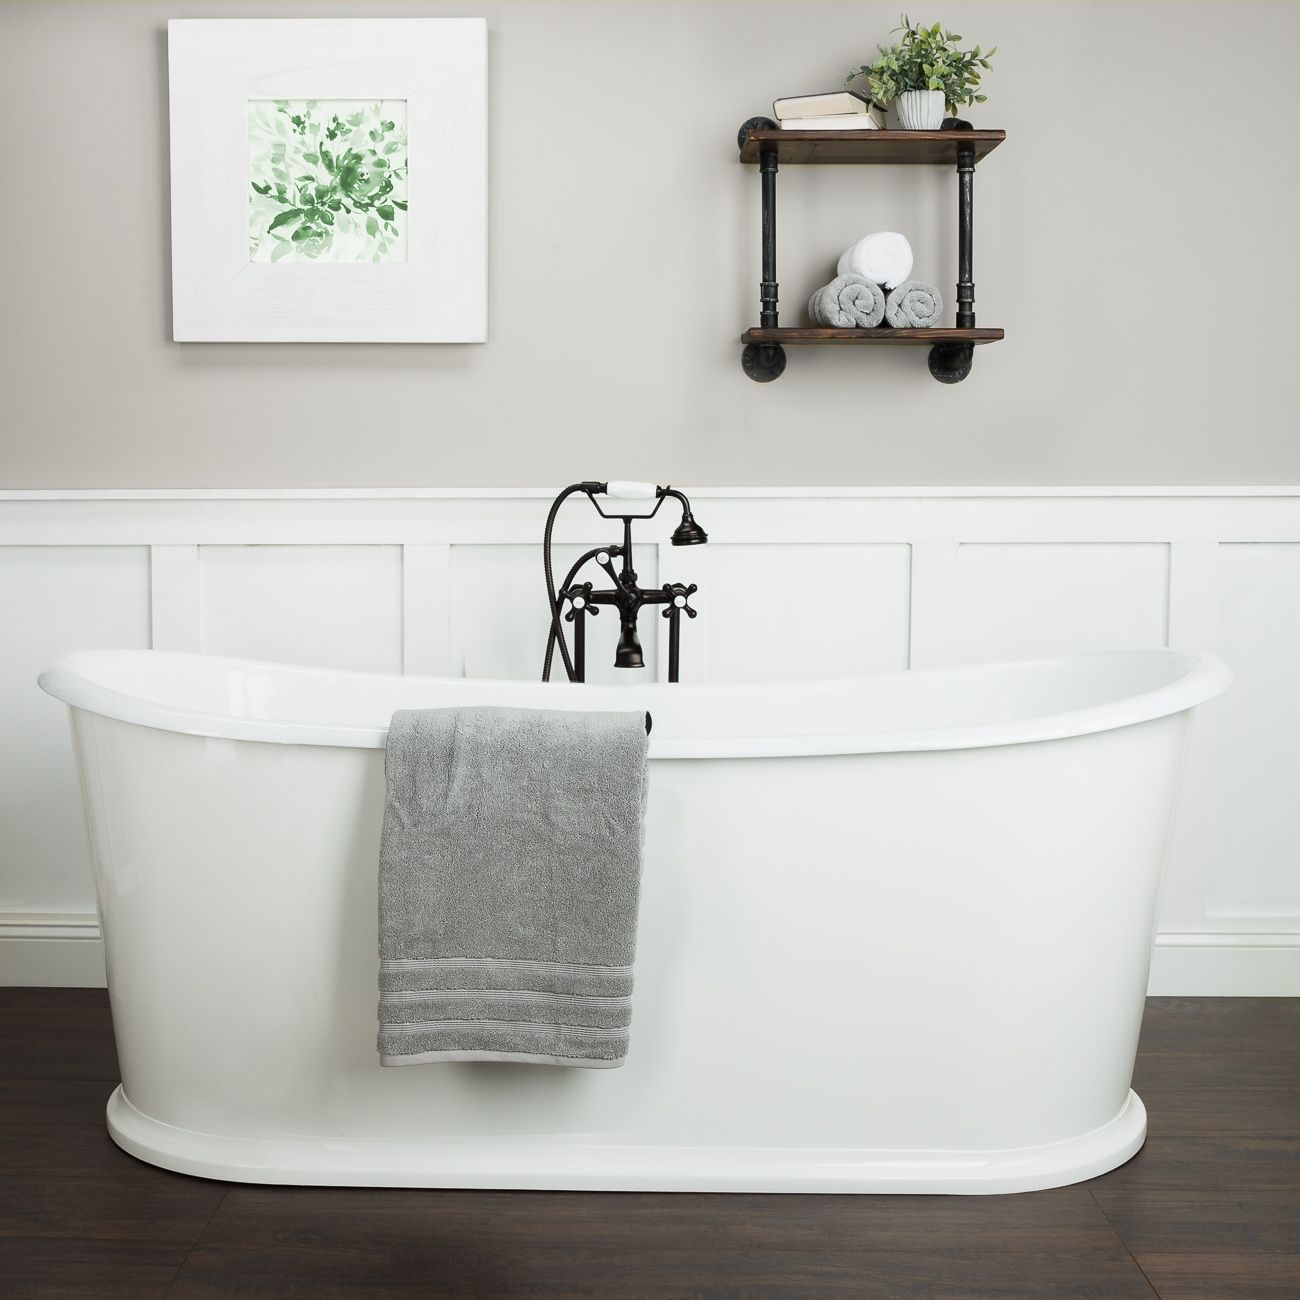 Ashley Cast Iron Double Ended Skirted Tub No Faucet Drillings Cast Iron Tub Free Standing Bath Tub Freestanding Tub Faucet